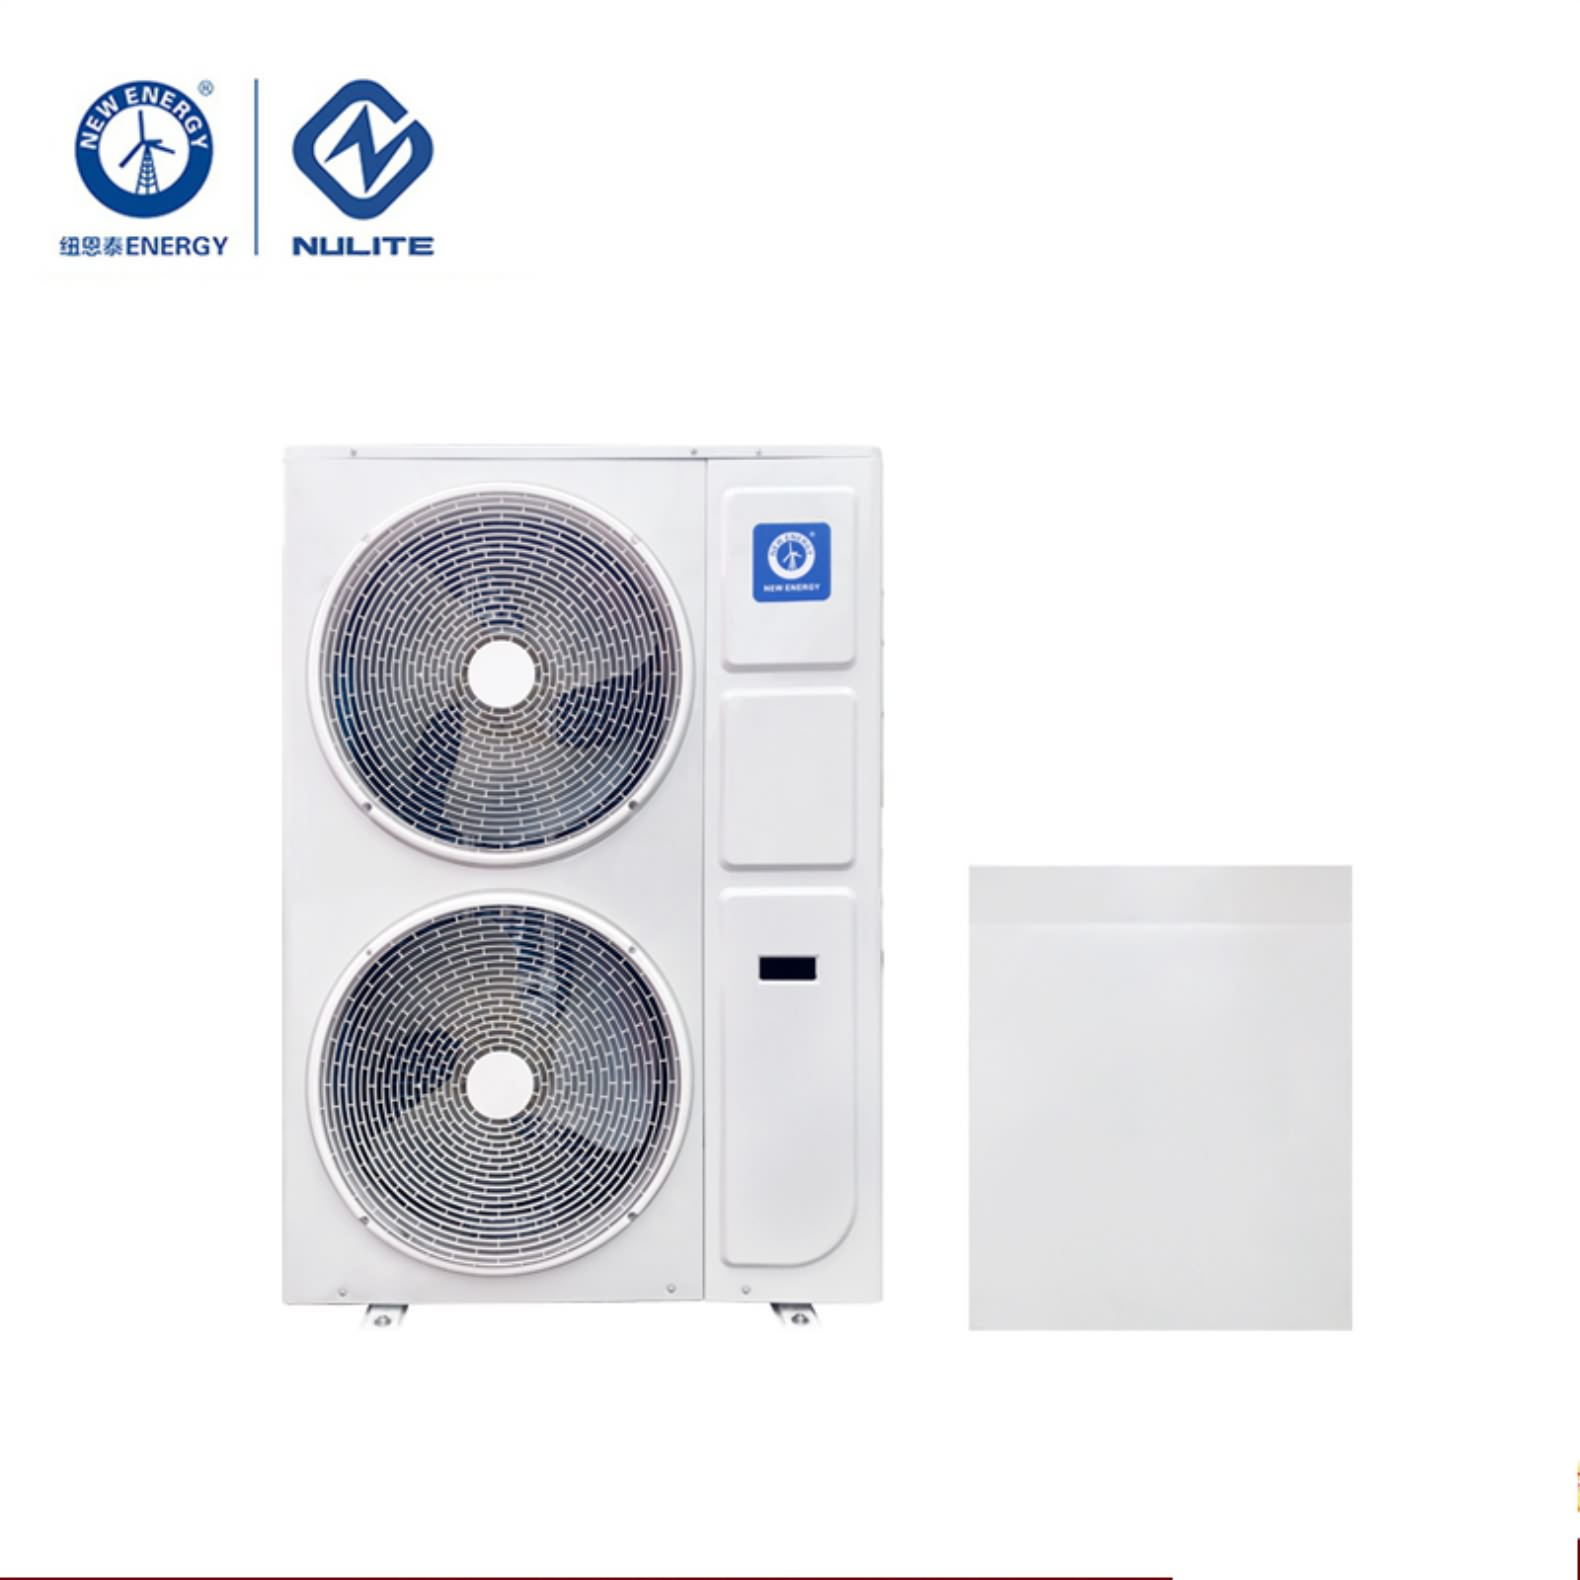 Best Price on Rohs Heat Pump -